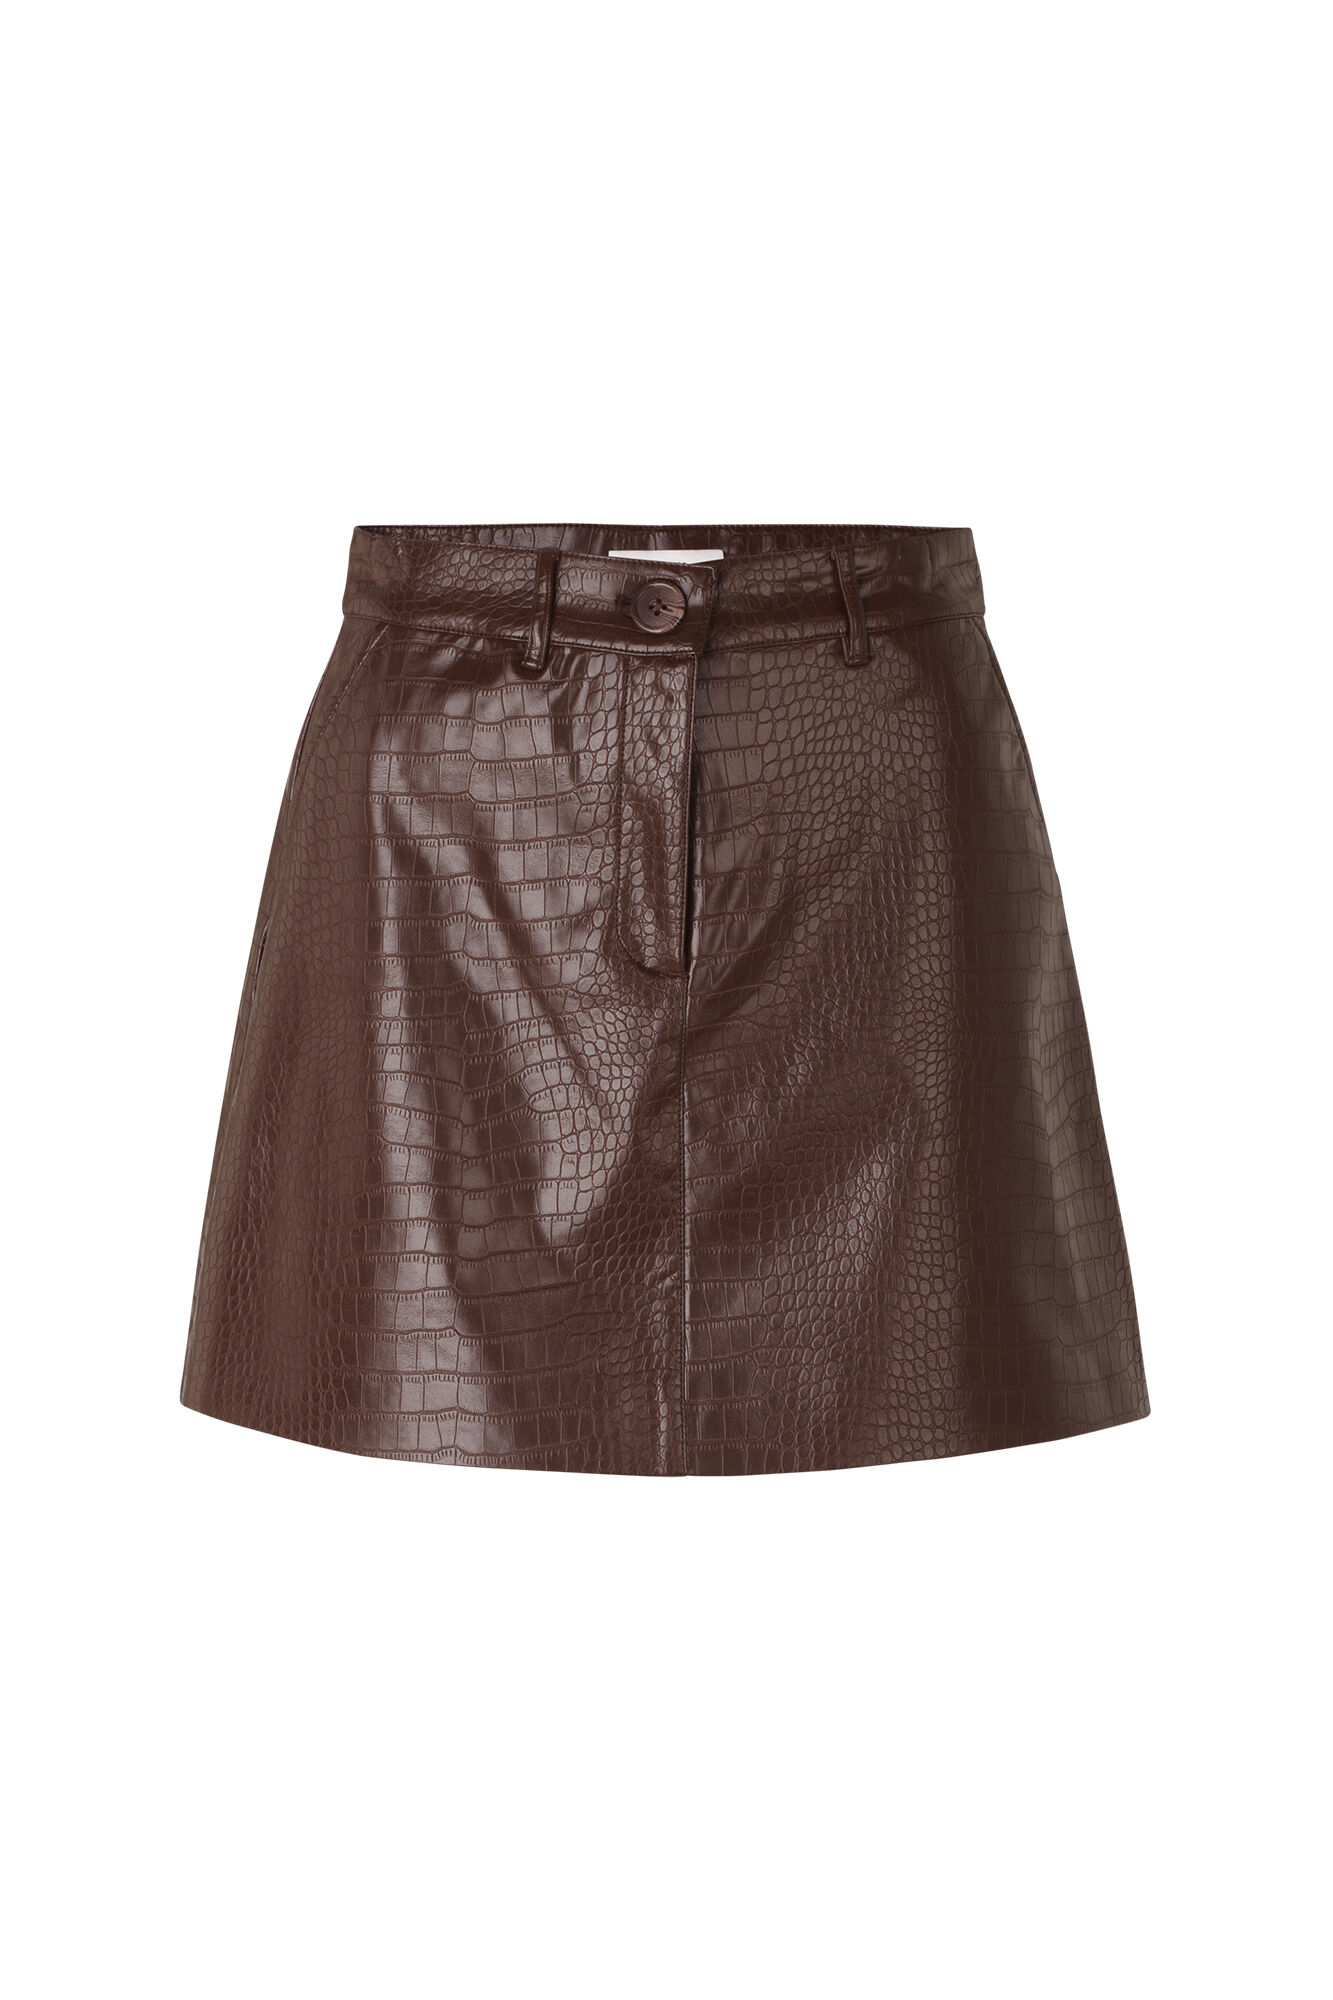 ENWILLOW SKIRT 6656, BROWN CROCO